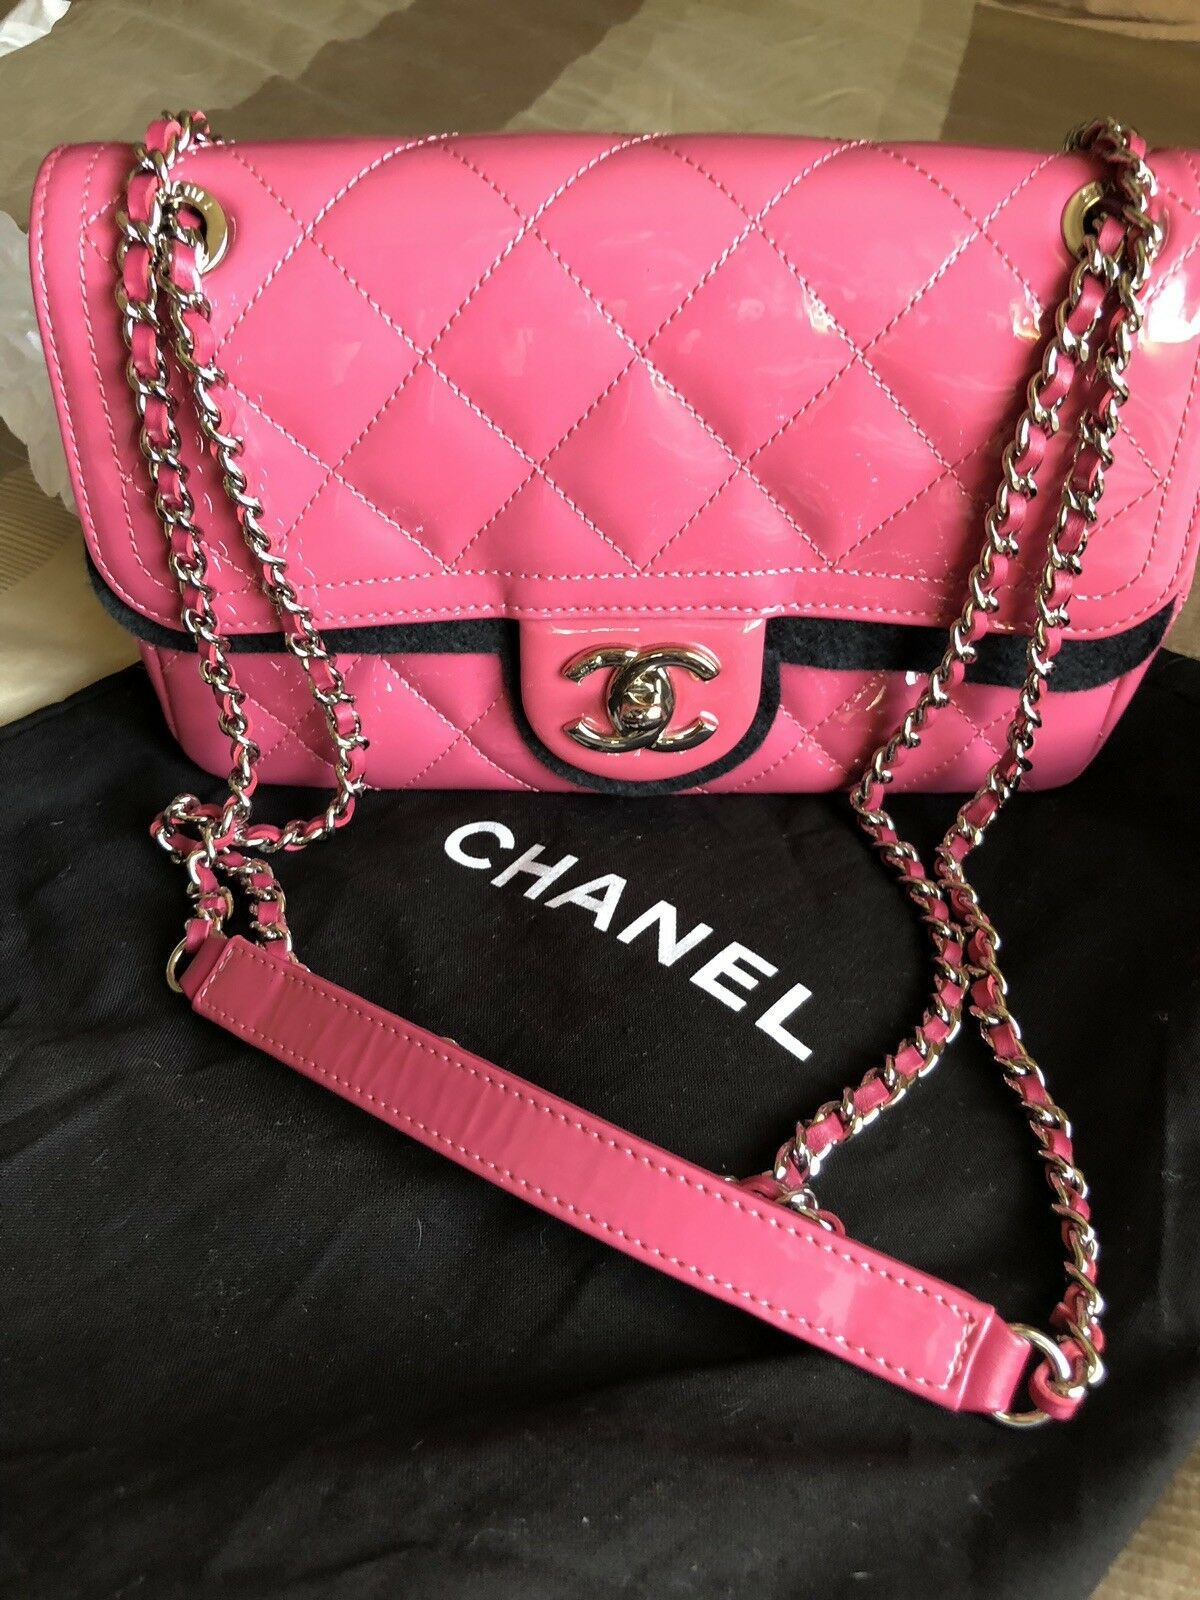 babd70b658a0ee Rare Chanel Patent Pink Mini Boy Small Classic Flap Cross Body Limited  Edition